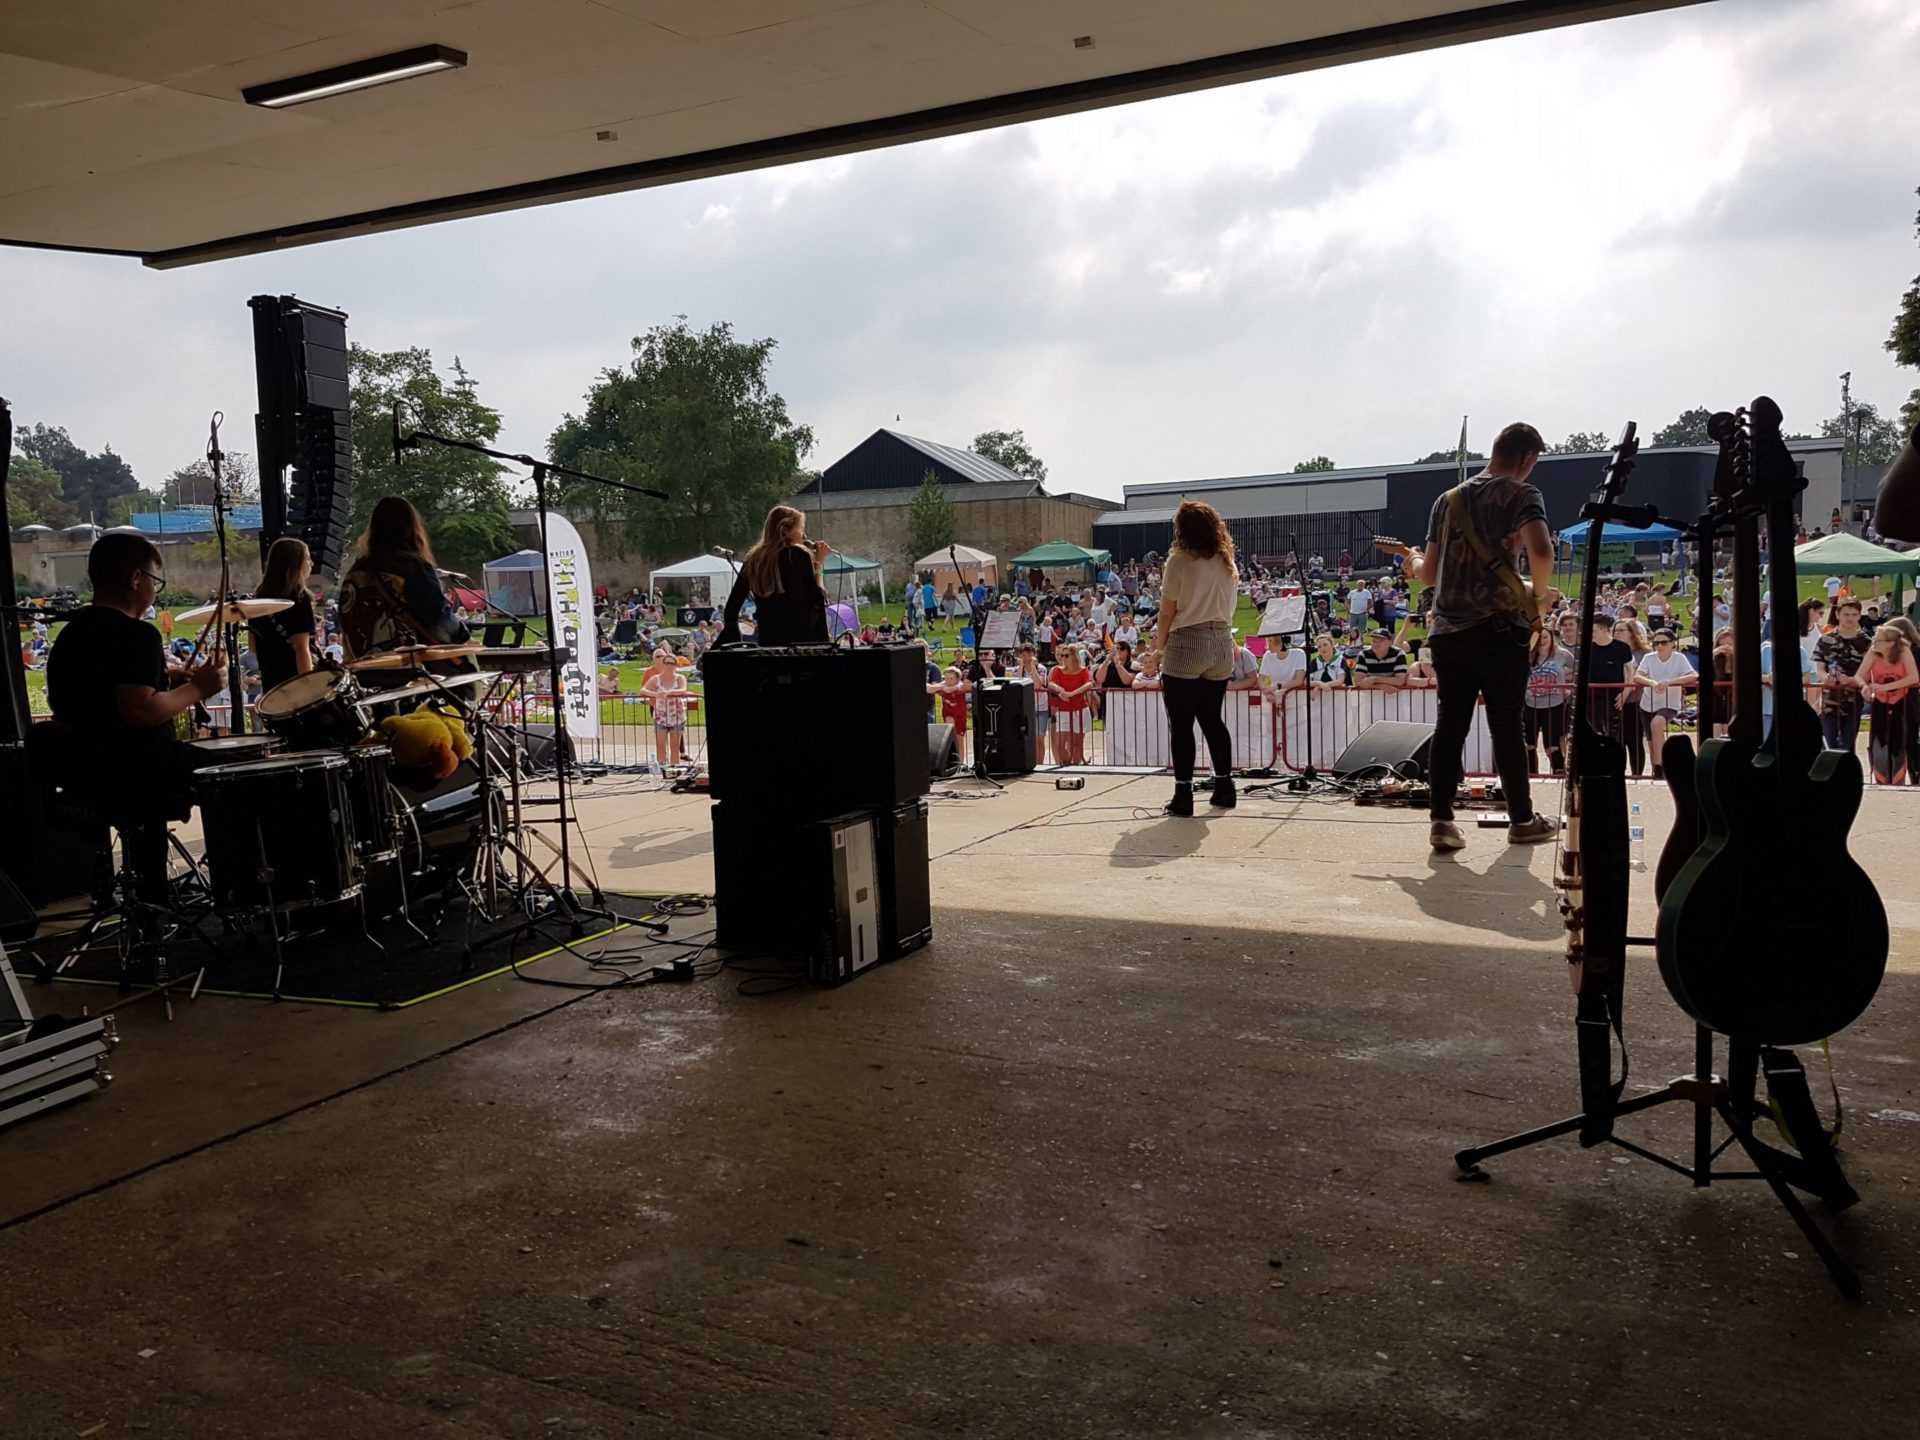 Band and pa system on harlow bandstand